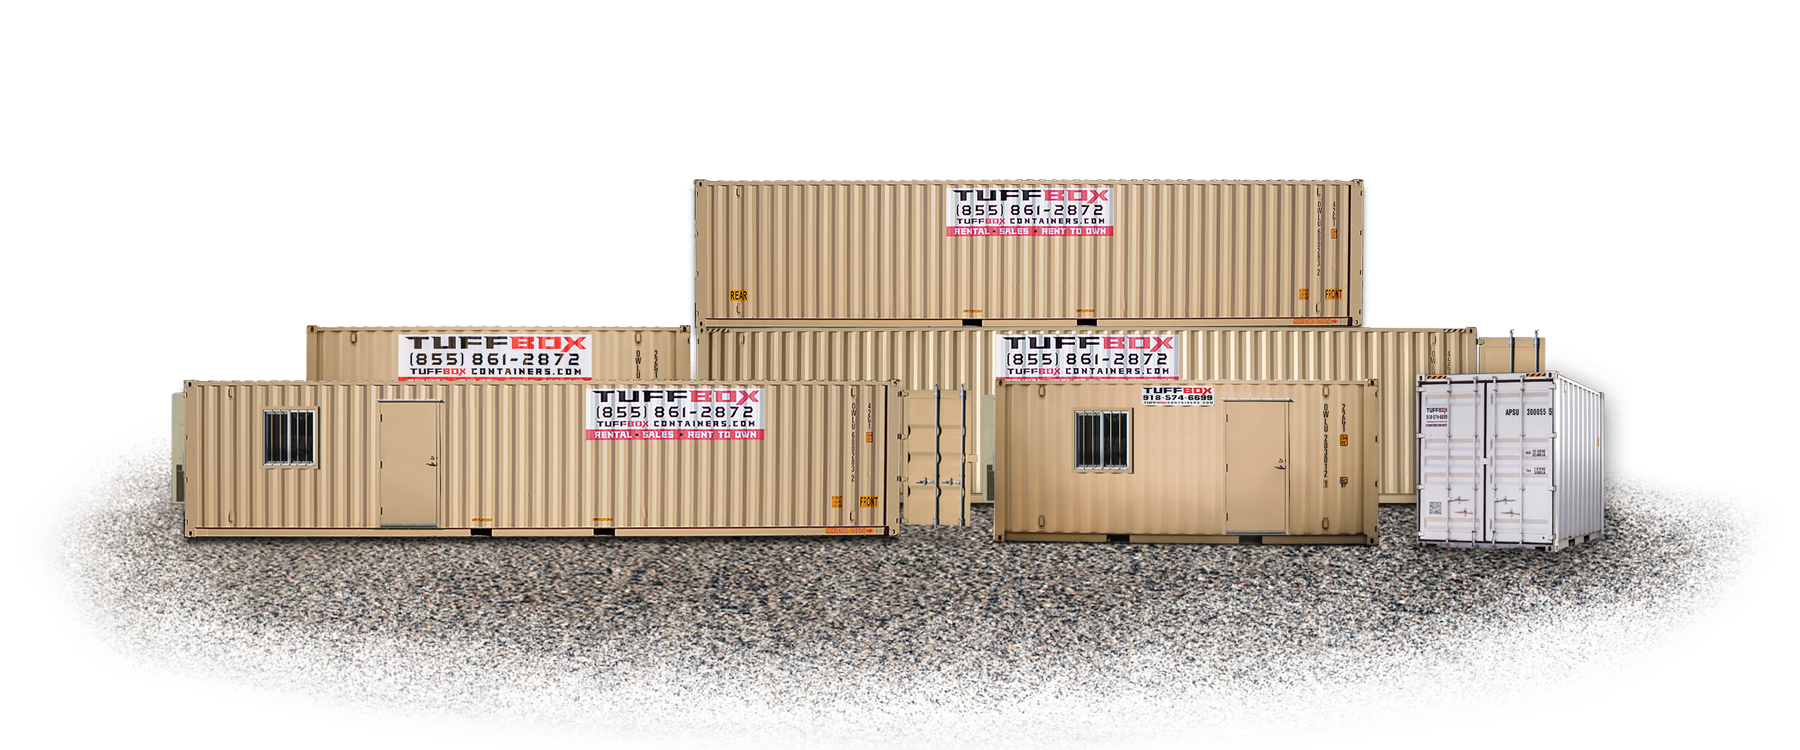 Office and storage containers